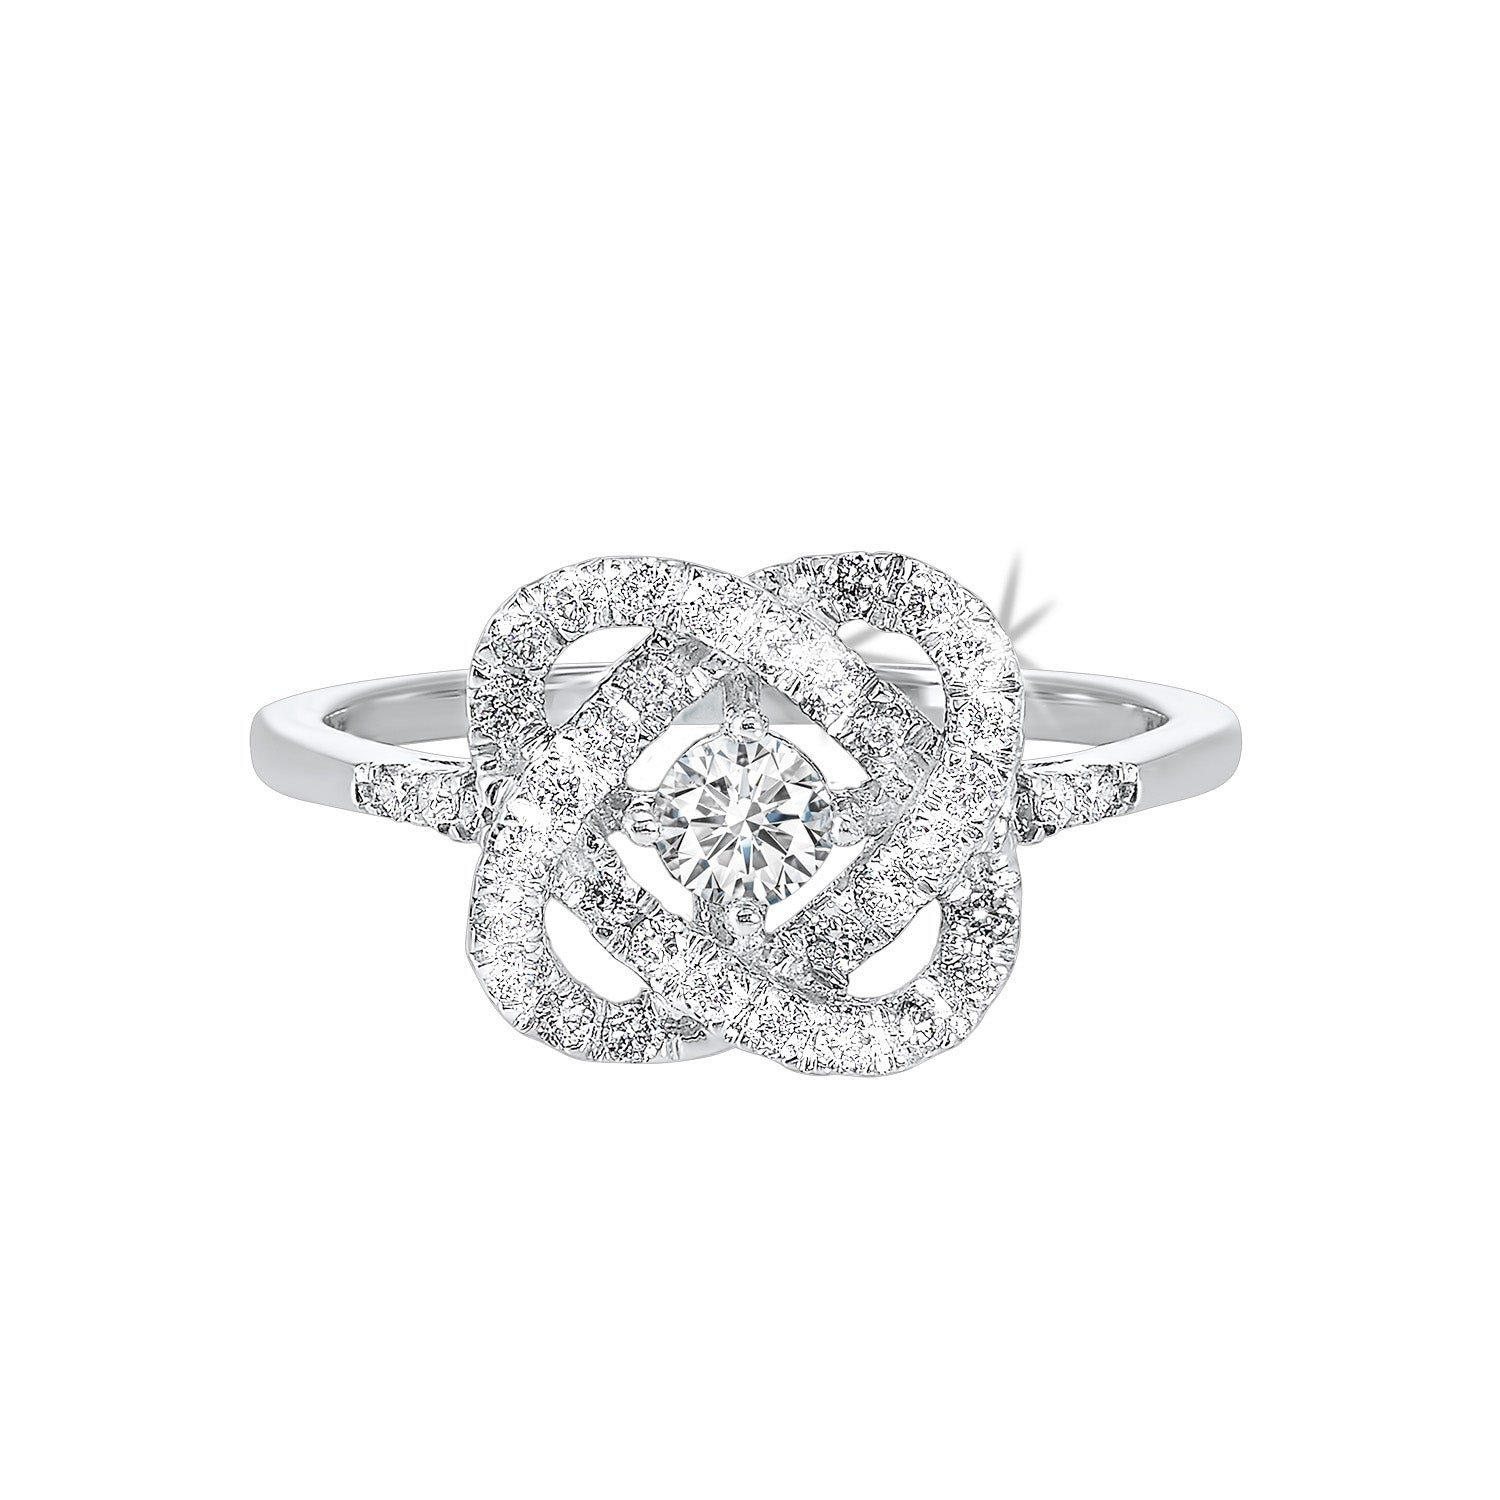 14k White Gold Diamond Ring LOVES CROSSING COLLECTION